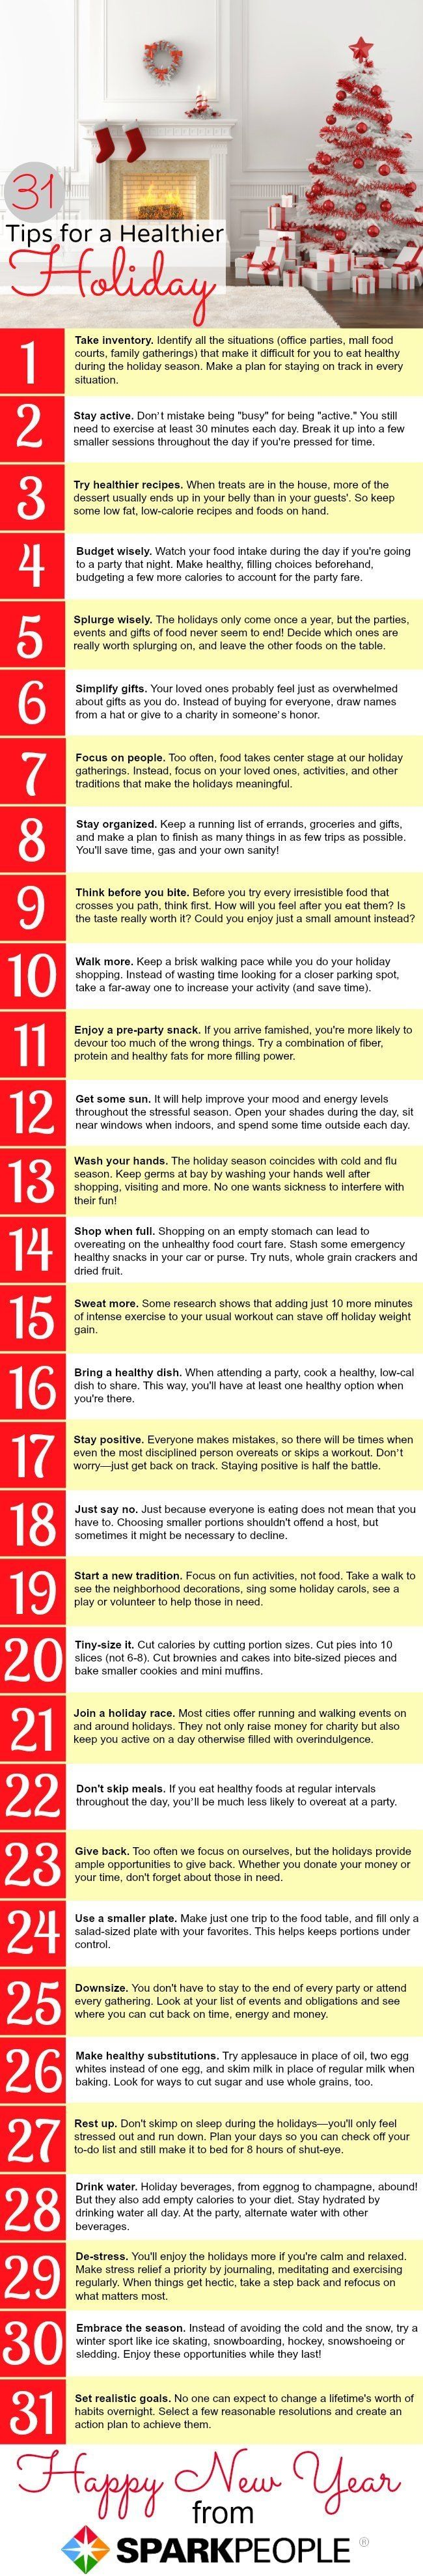 10 best Healthy Holidays images on Pinterest | Cooking recipes ...